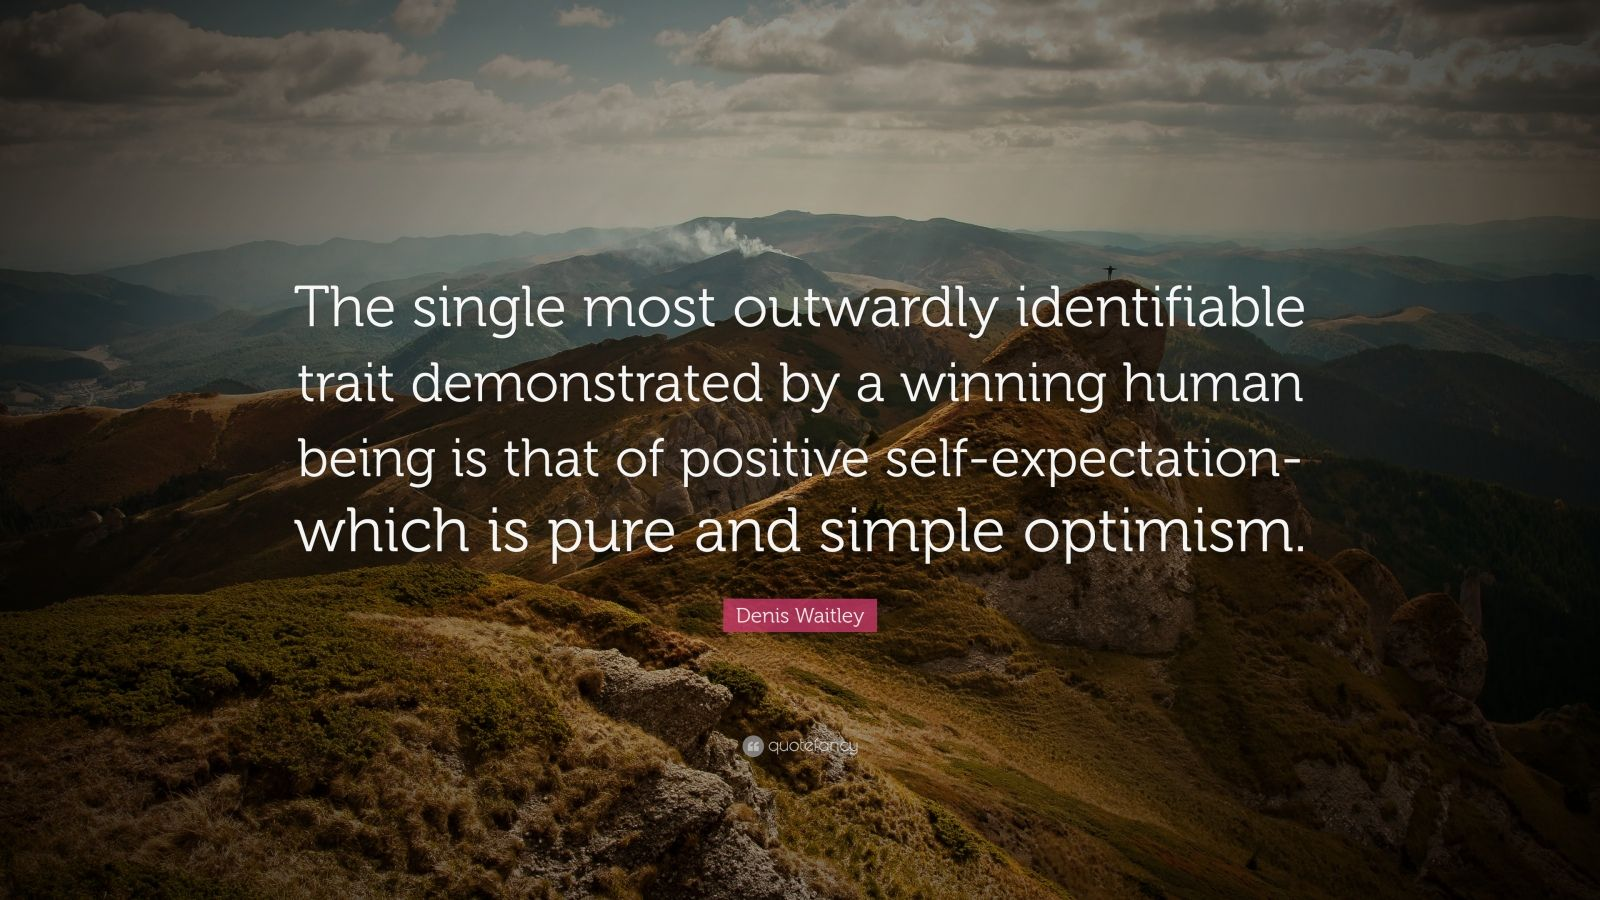 """Denis Waitley Quote: """"The single most outwardly identifiable trait demonstrated by a winning human being is that of positive self-expectation- which is pure and simple optimism."""""""